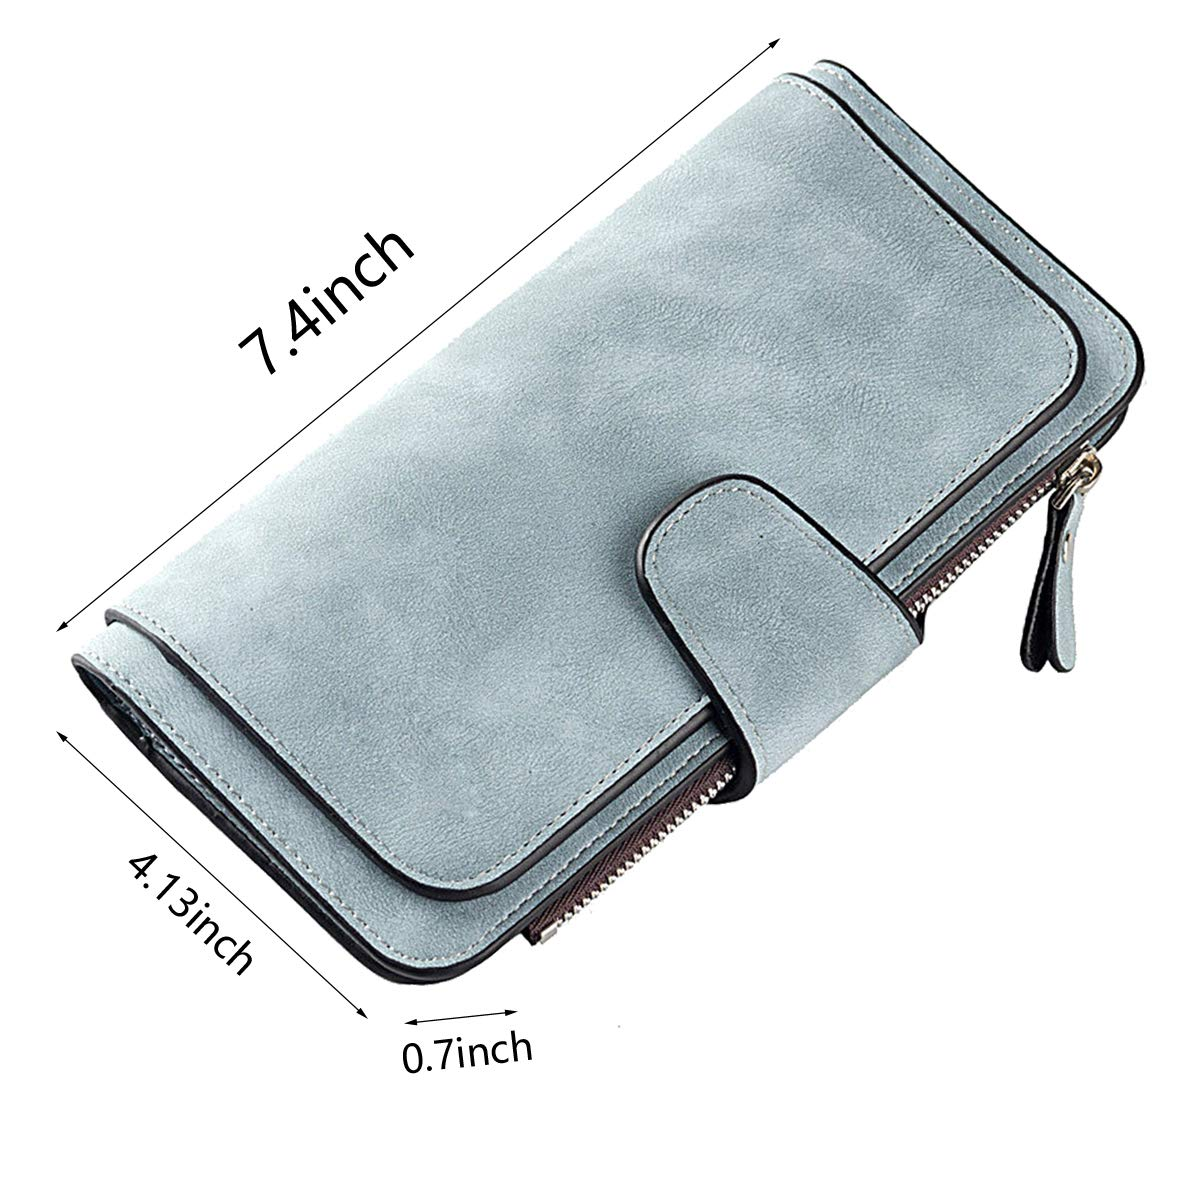 Laynos Wallet for Women Leather Clutch Purse Long Ladies Credit Card Holder Organizer Travel Purse Blue by Laynos (Image #3)